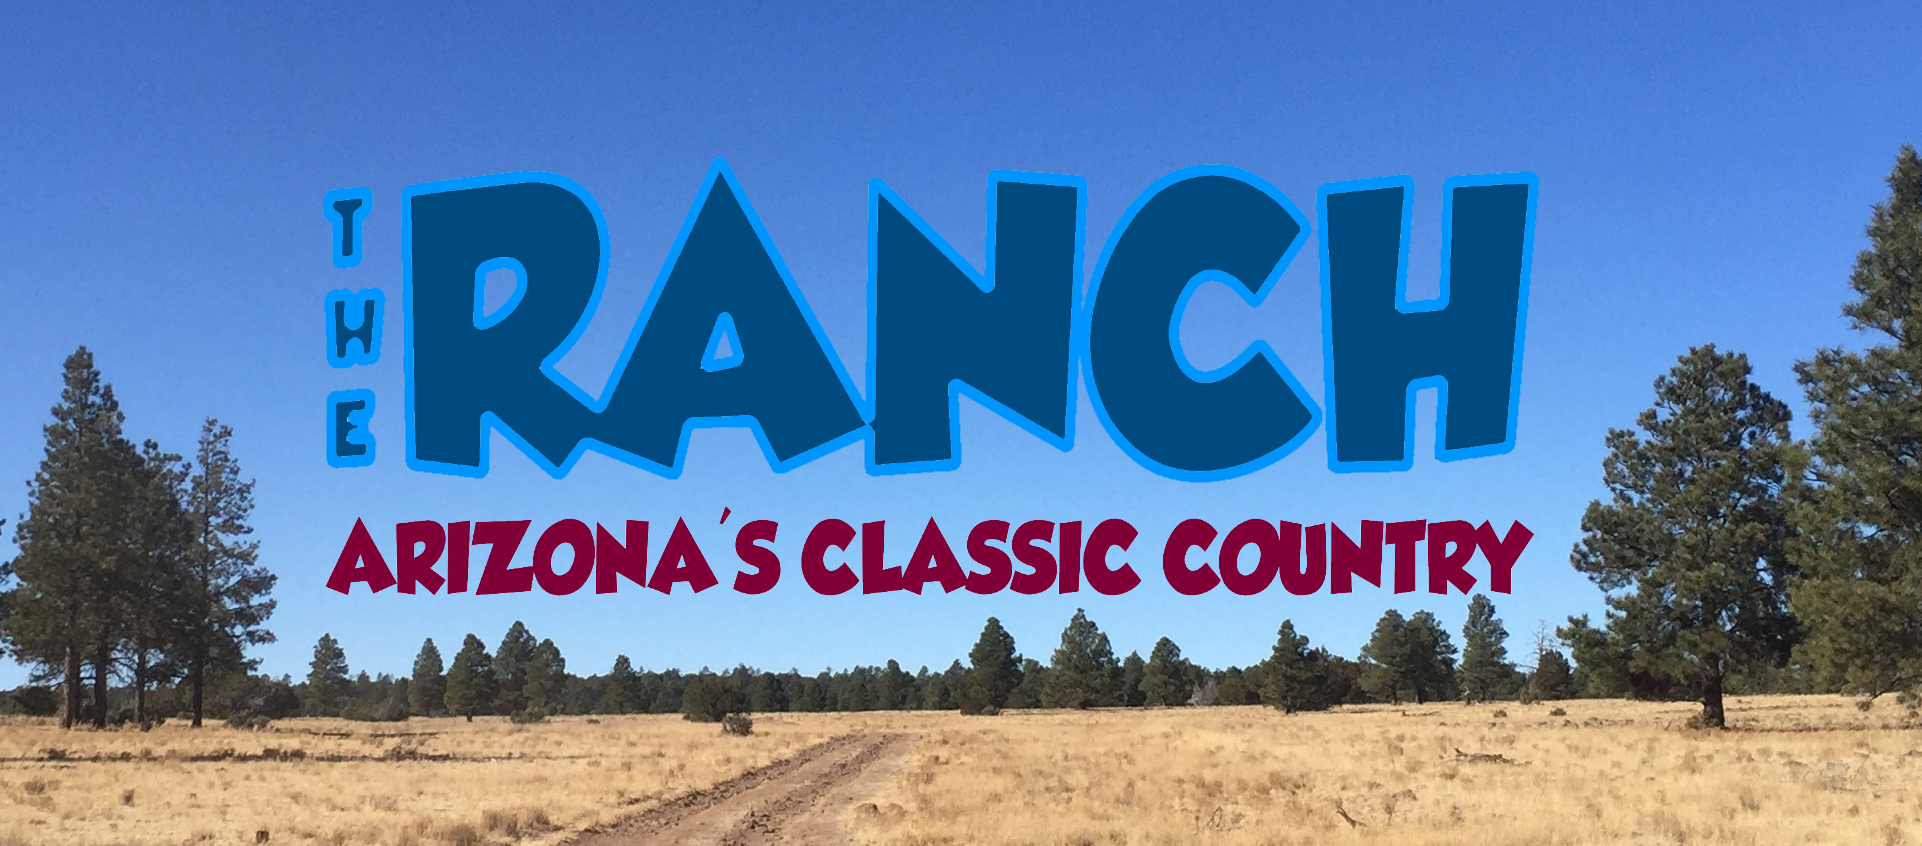 The Ranch – Arizona's Classic Country